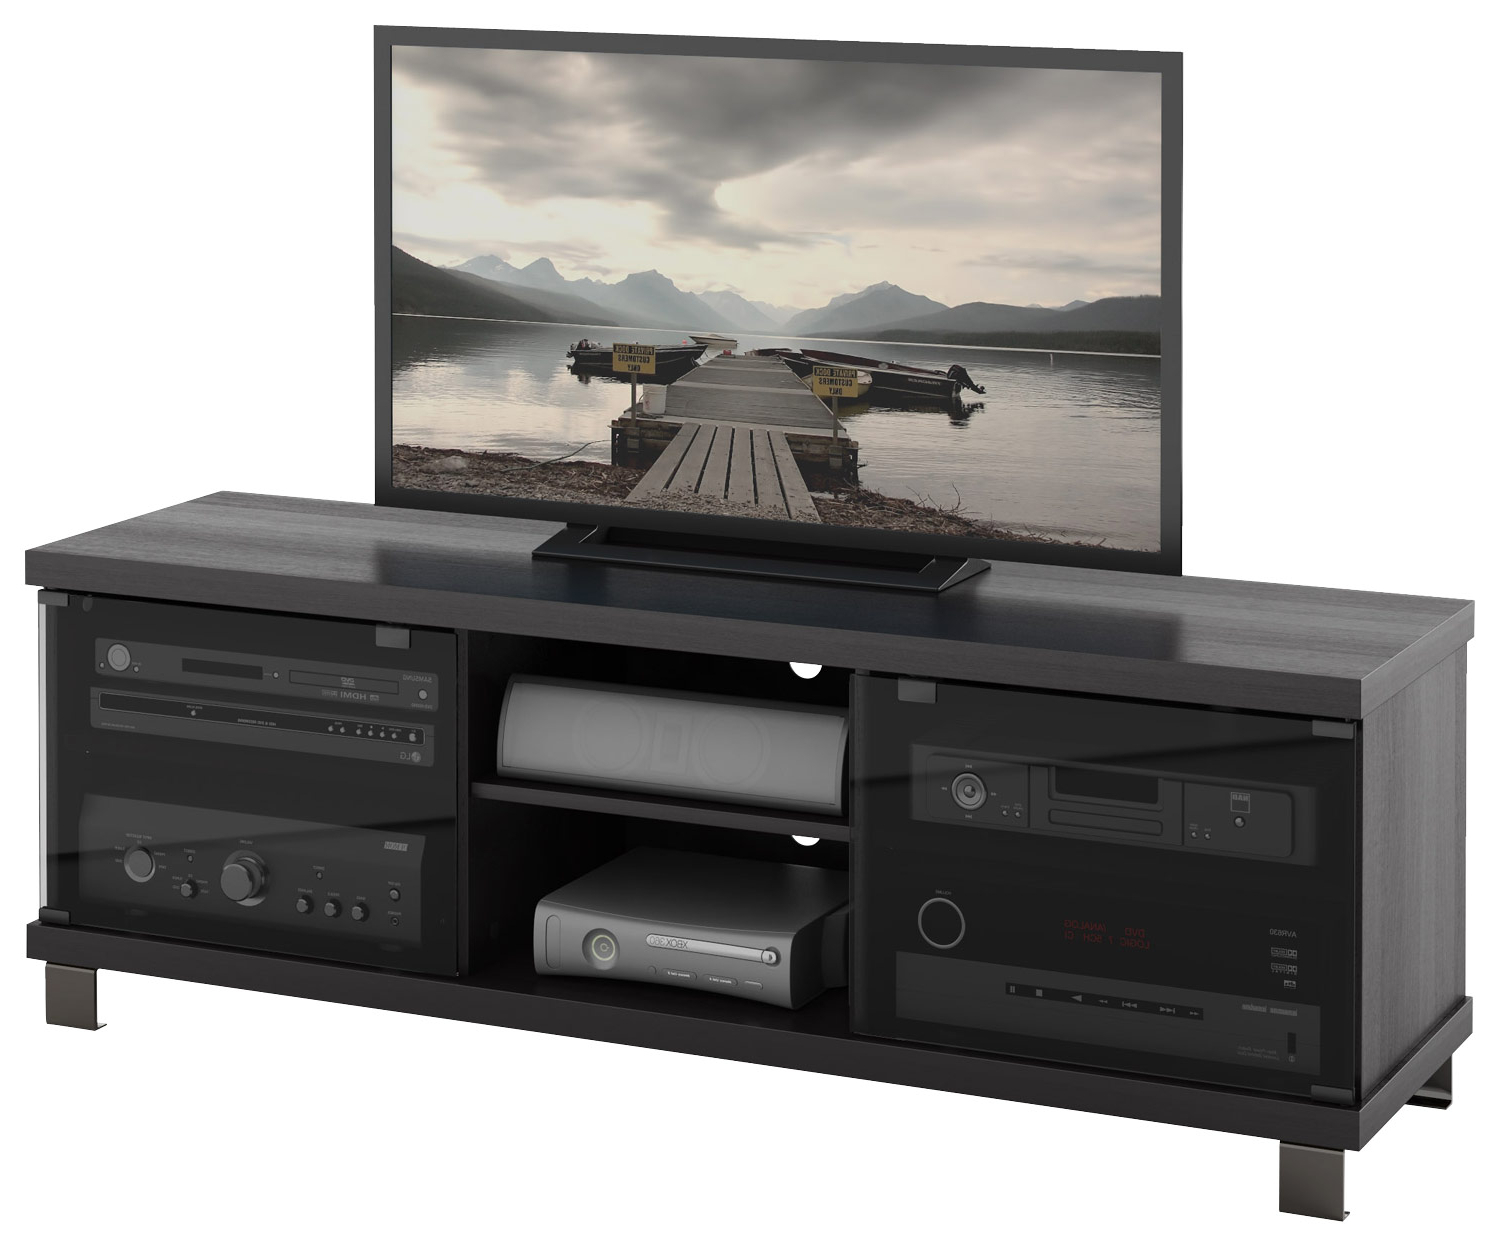 "Trendy Sonax Tv Stand For Tvs Up To 68"" Black Hc 5590 – Best Buy Inside Sonax Tv Stands (View 11 of 20)"